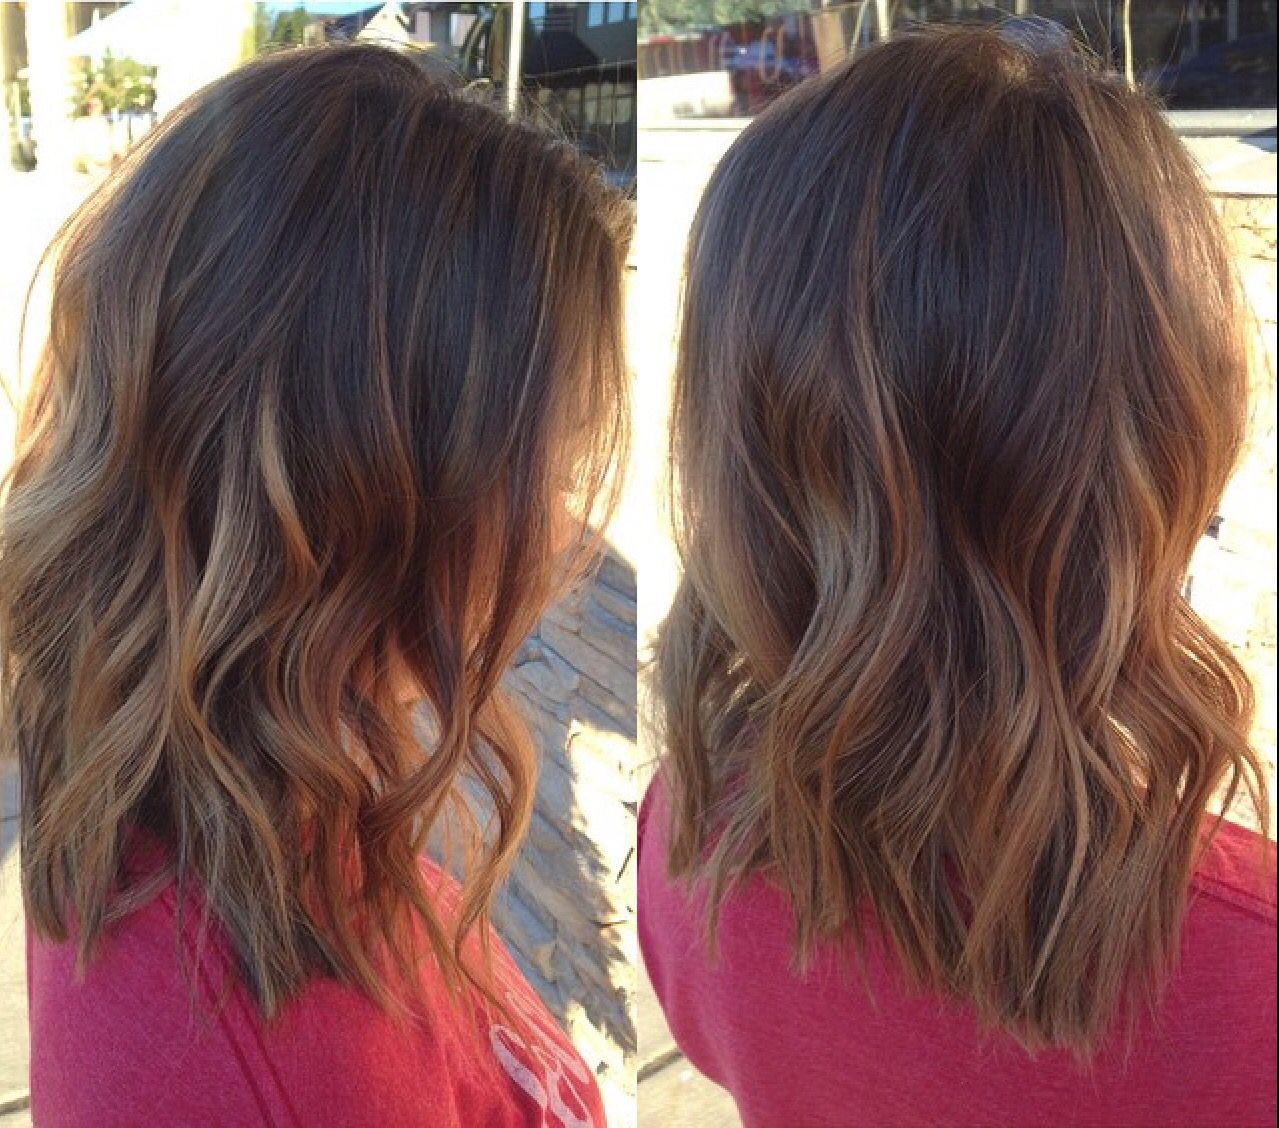 Long bob hair cut and caramel balayage done by stylist - Balayage braun caramel ...